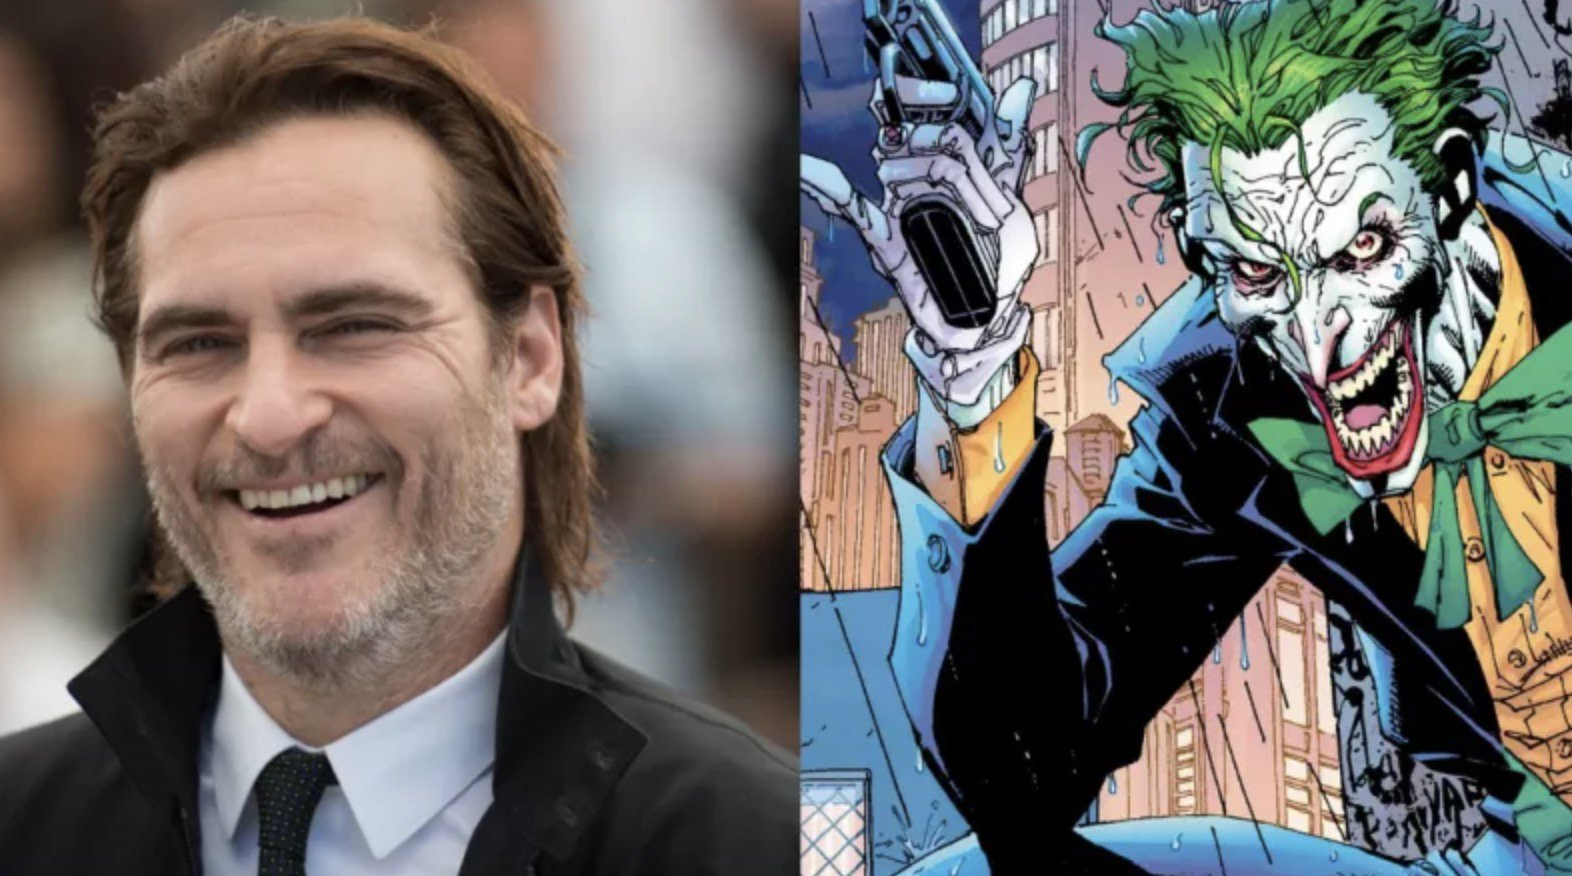 Joaquin Phoenix is officially playing the Joker in a standalone origin movie https://t.co/YOIFTzZOJM https://t.co/Pzi3A0SiWy